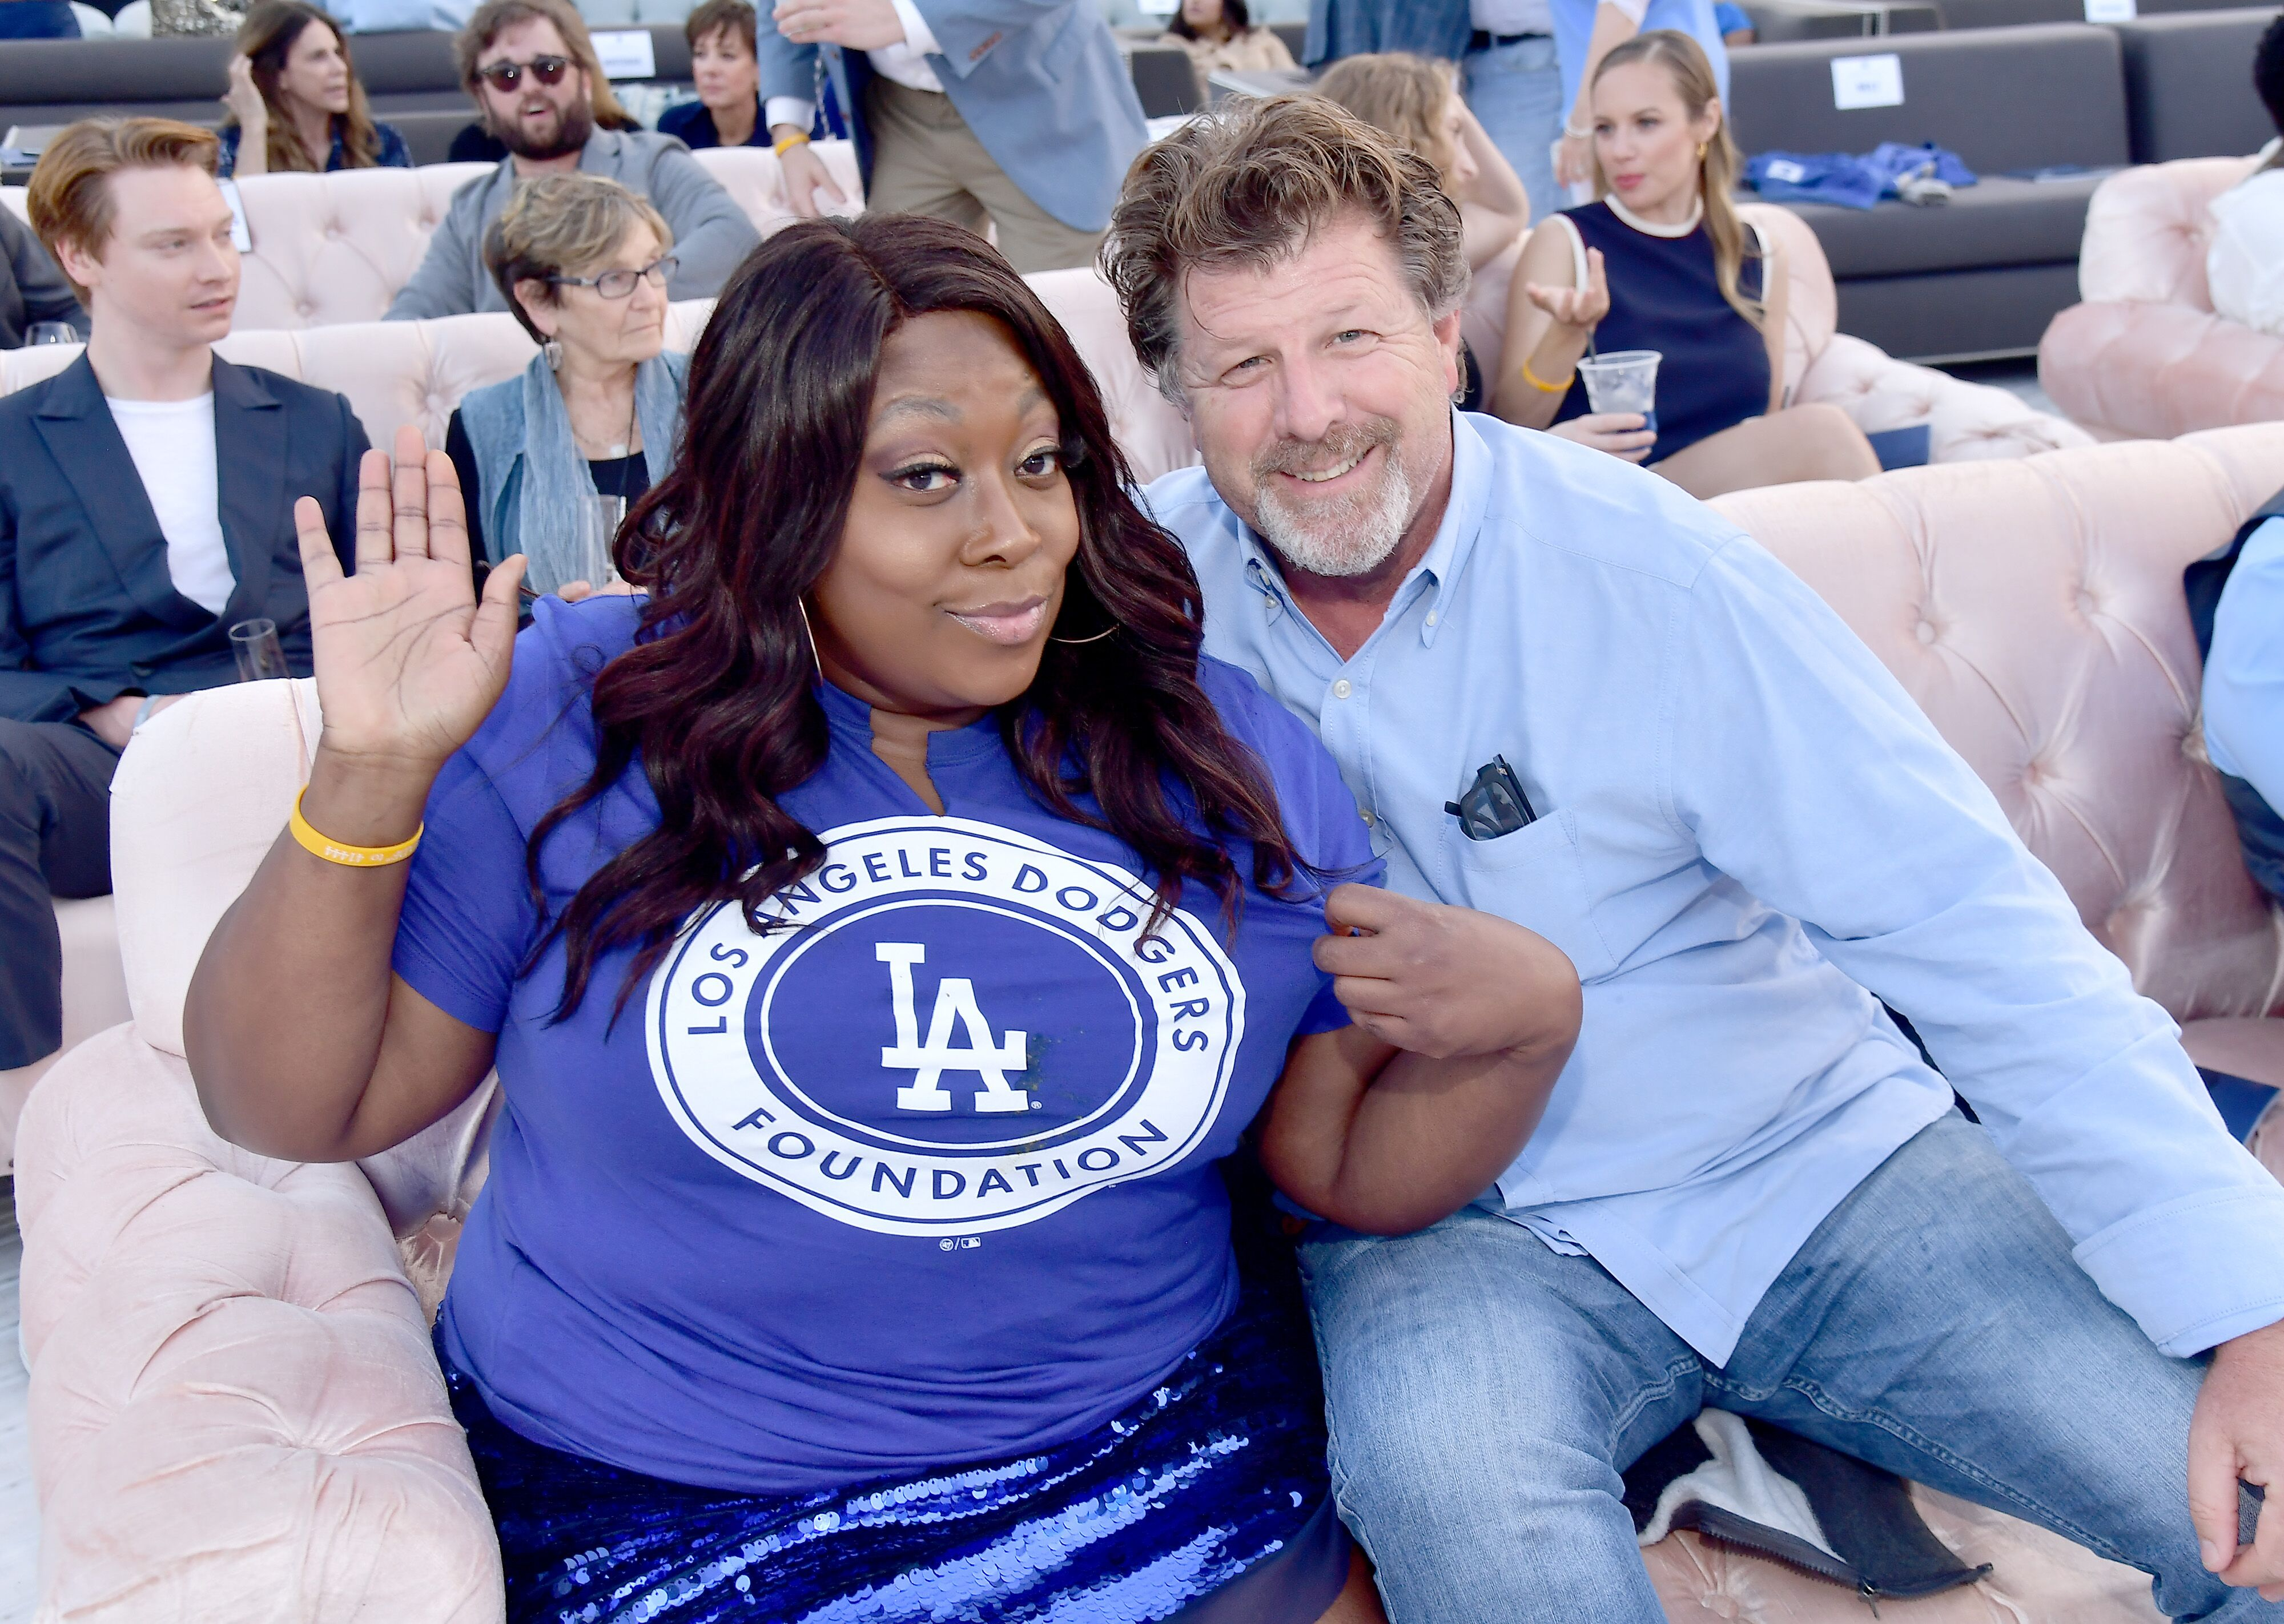 Loni Love and James Welsh attend the 5th Anniversary Los Angeles Dodgers Foundation Blue Diamond Gala. | Source: Getty Images